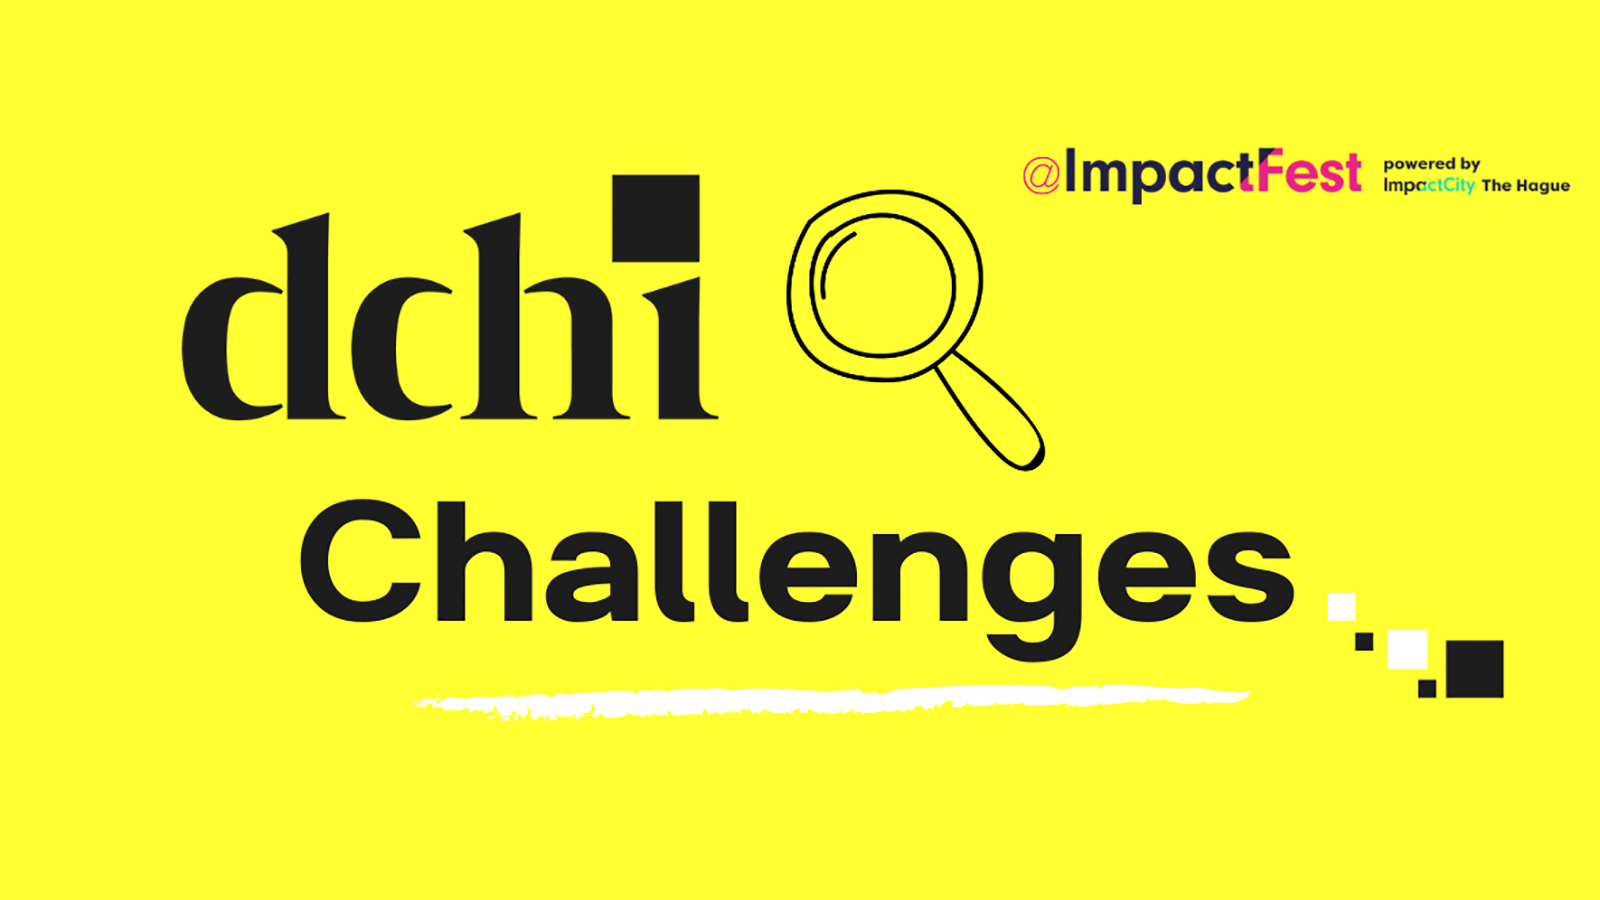 You're Invited to virtually join us @ImpactFest 2020